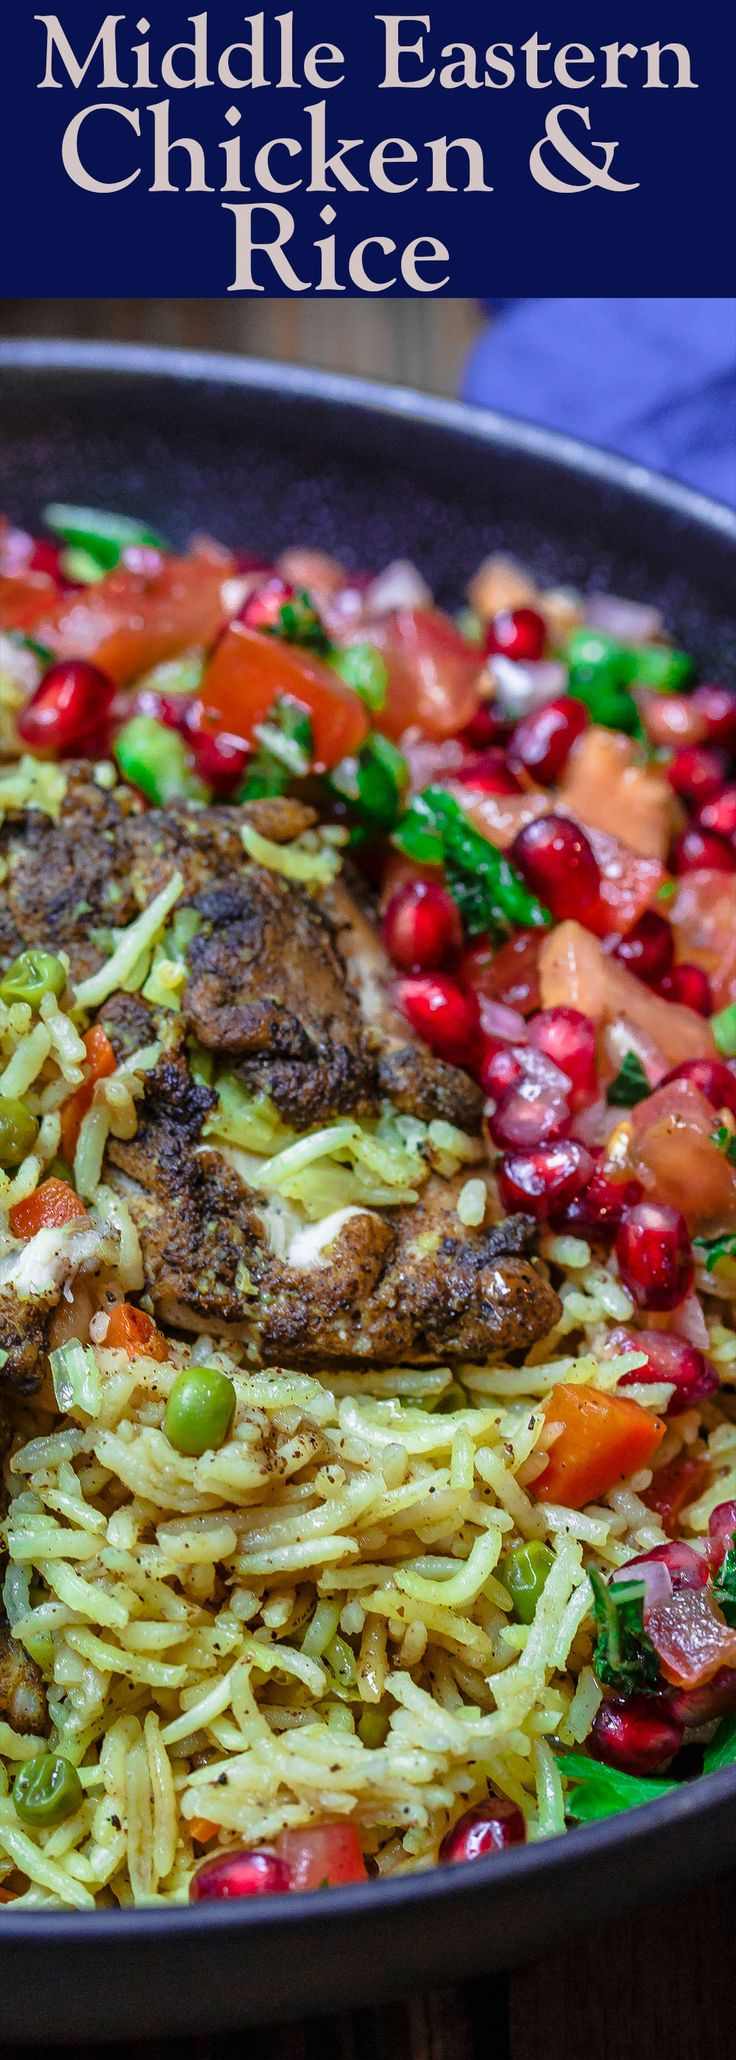 Middle Eastern Chicken and Rice | The Mediterranean Dish